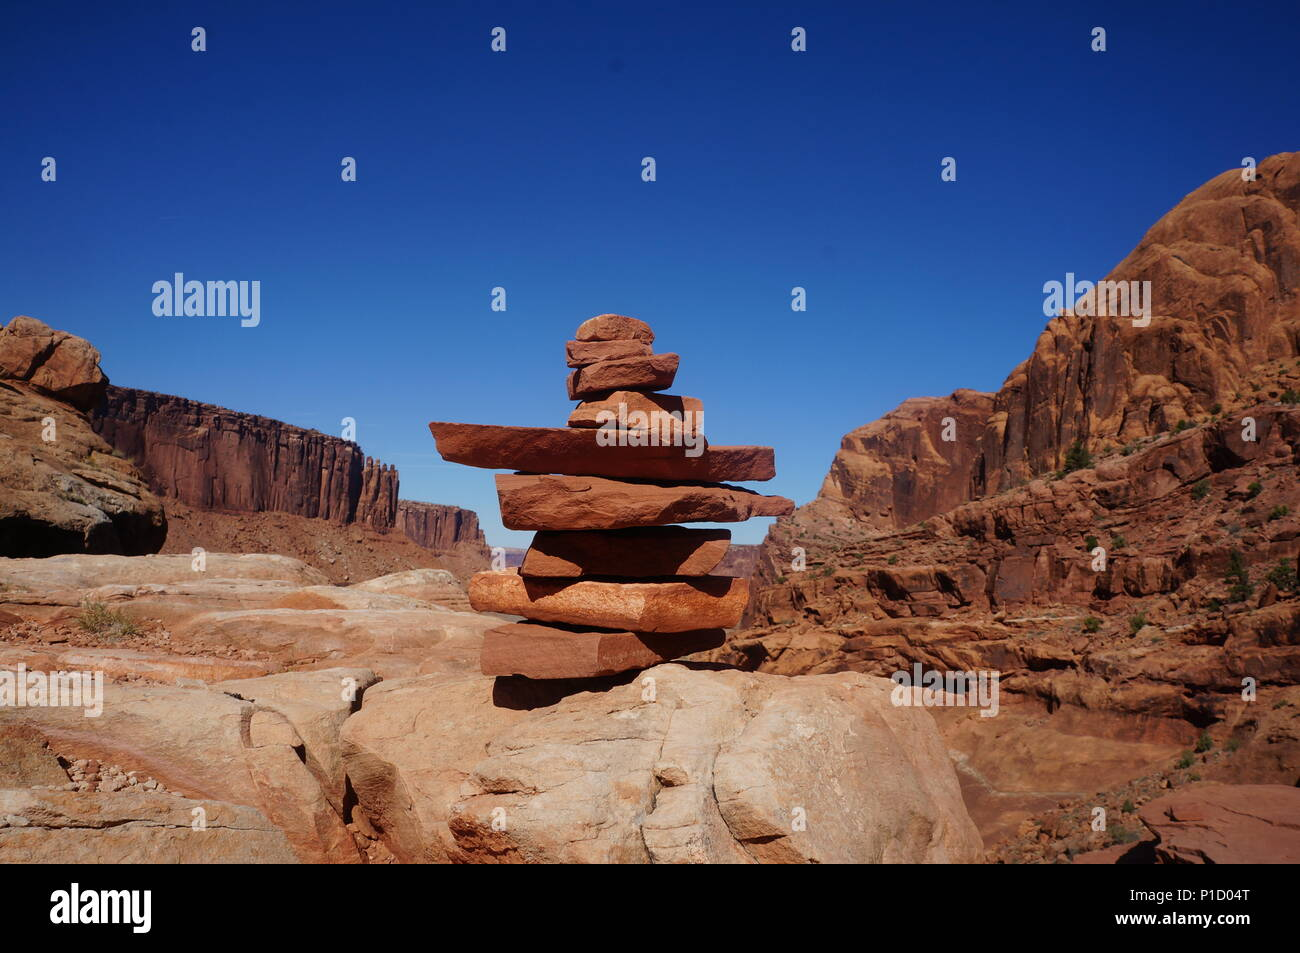 Cairns marking the trail ahead on the Syncline Loop Trail in Canyonlands National Park in Moab, Utah. - Stock Image